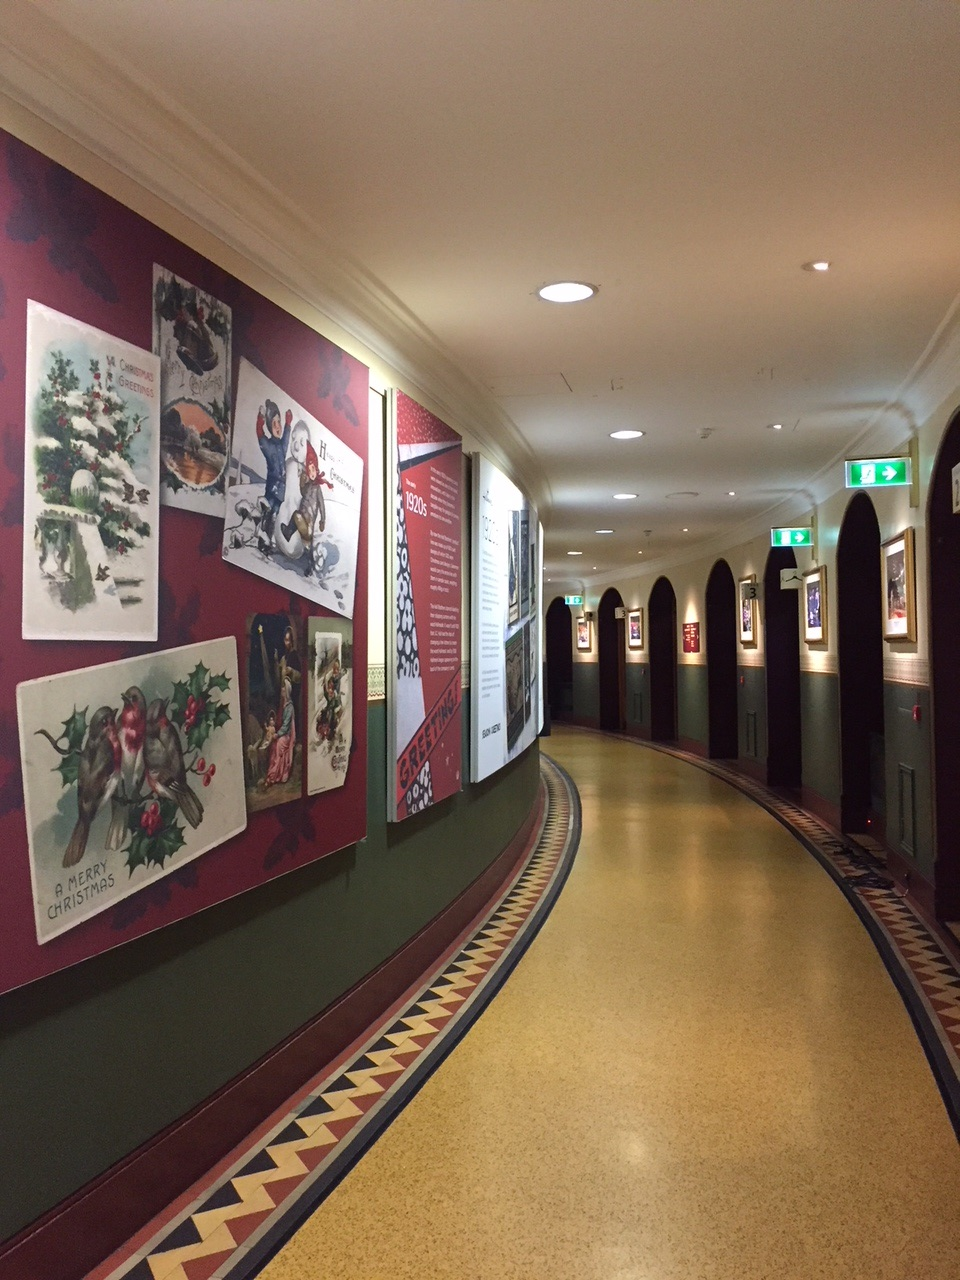 Above: The Hallmark Christmas card exhibition clads the perimeter wall of the main corridor of the Royal Albert Hall.